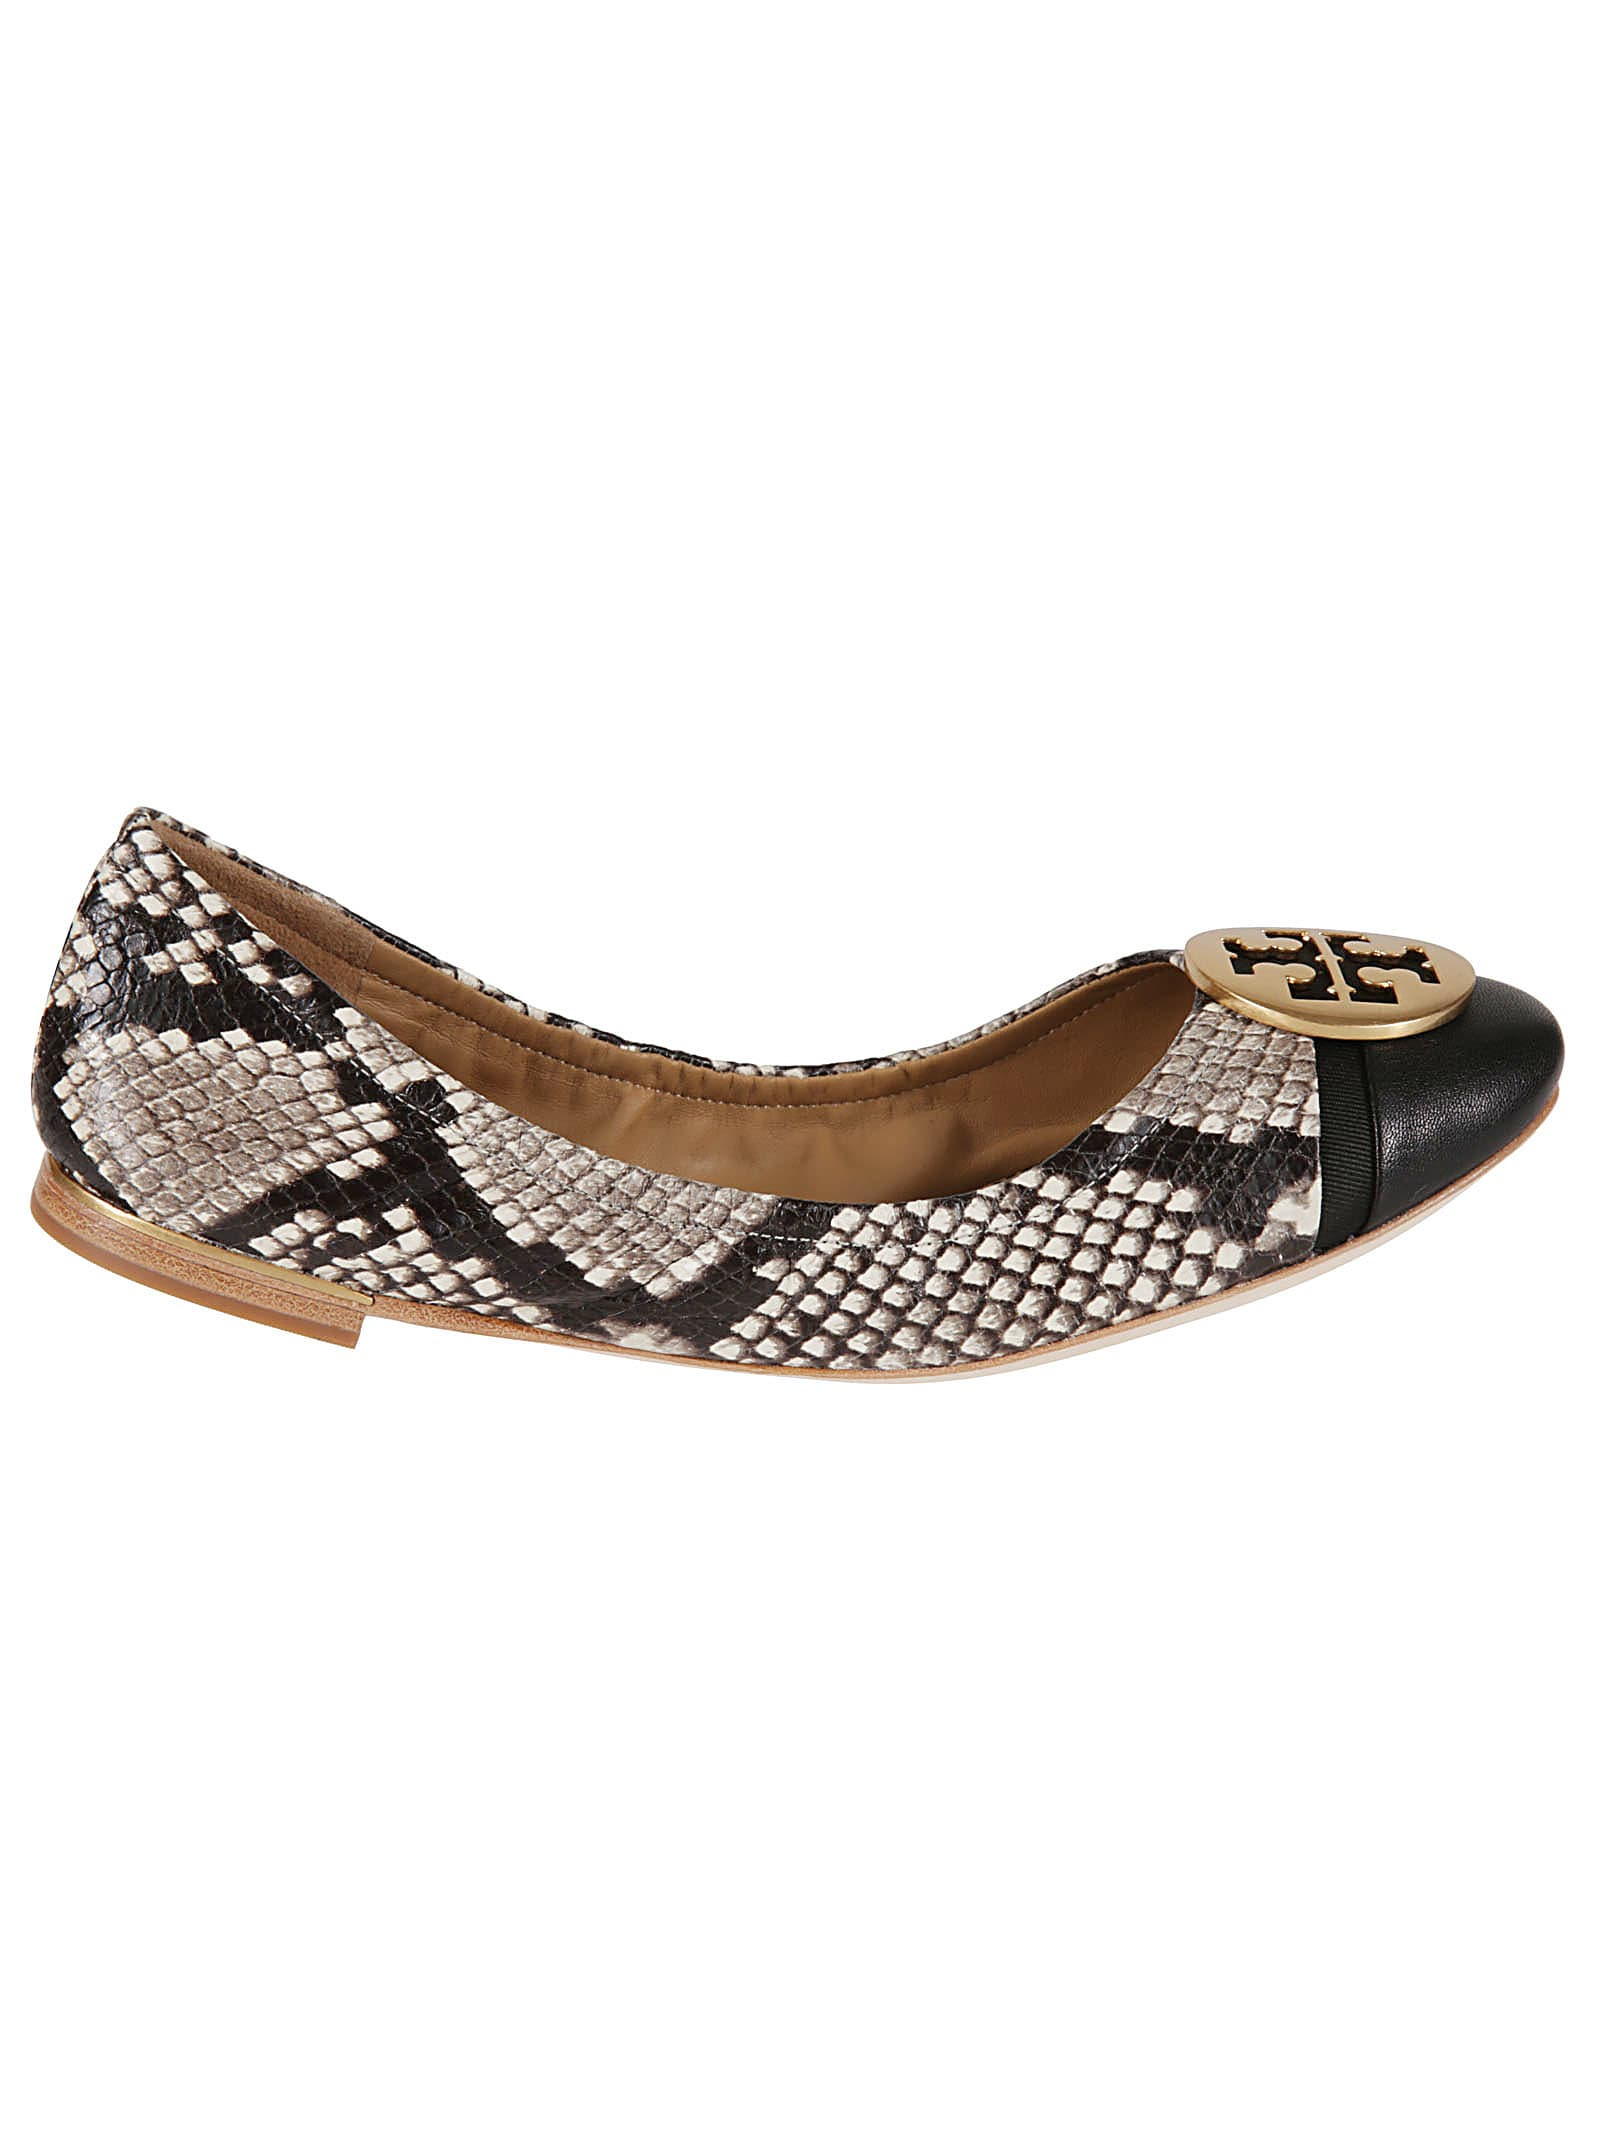 Tory Burch Minnie Cap-toe Ballerinas